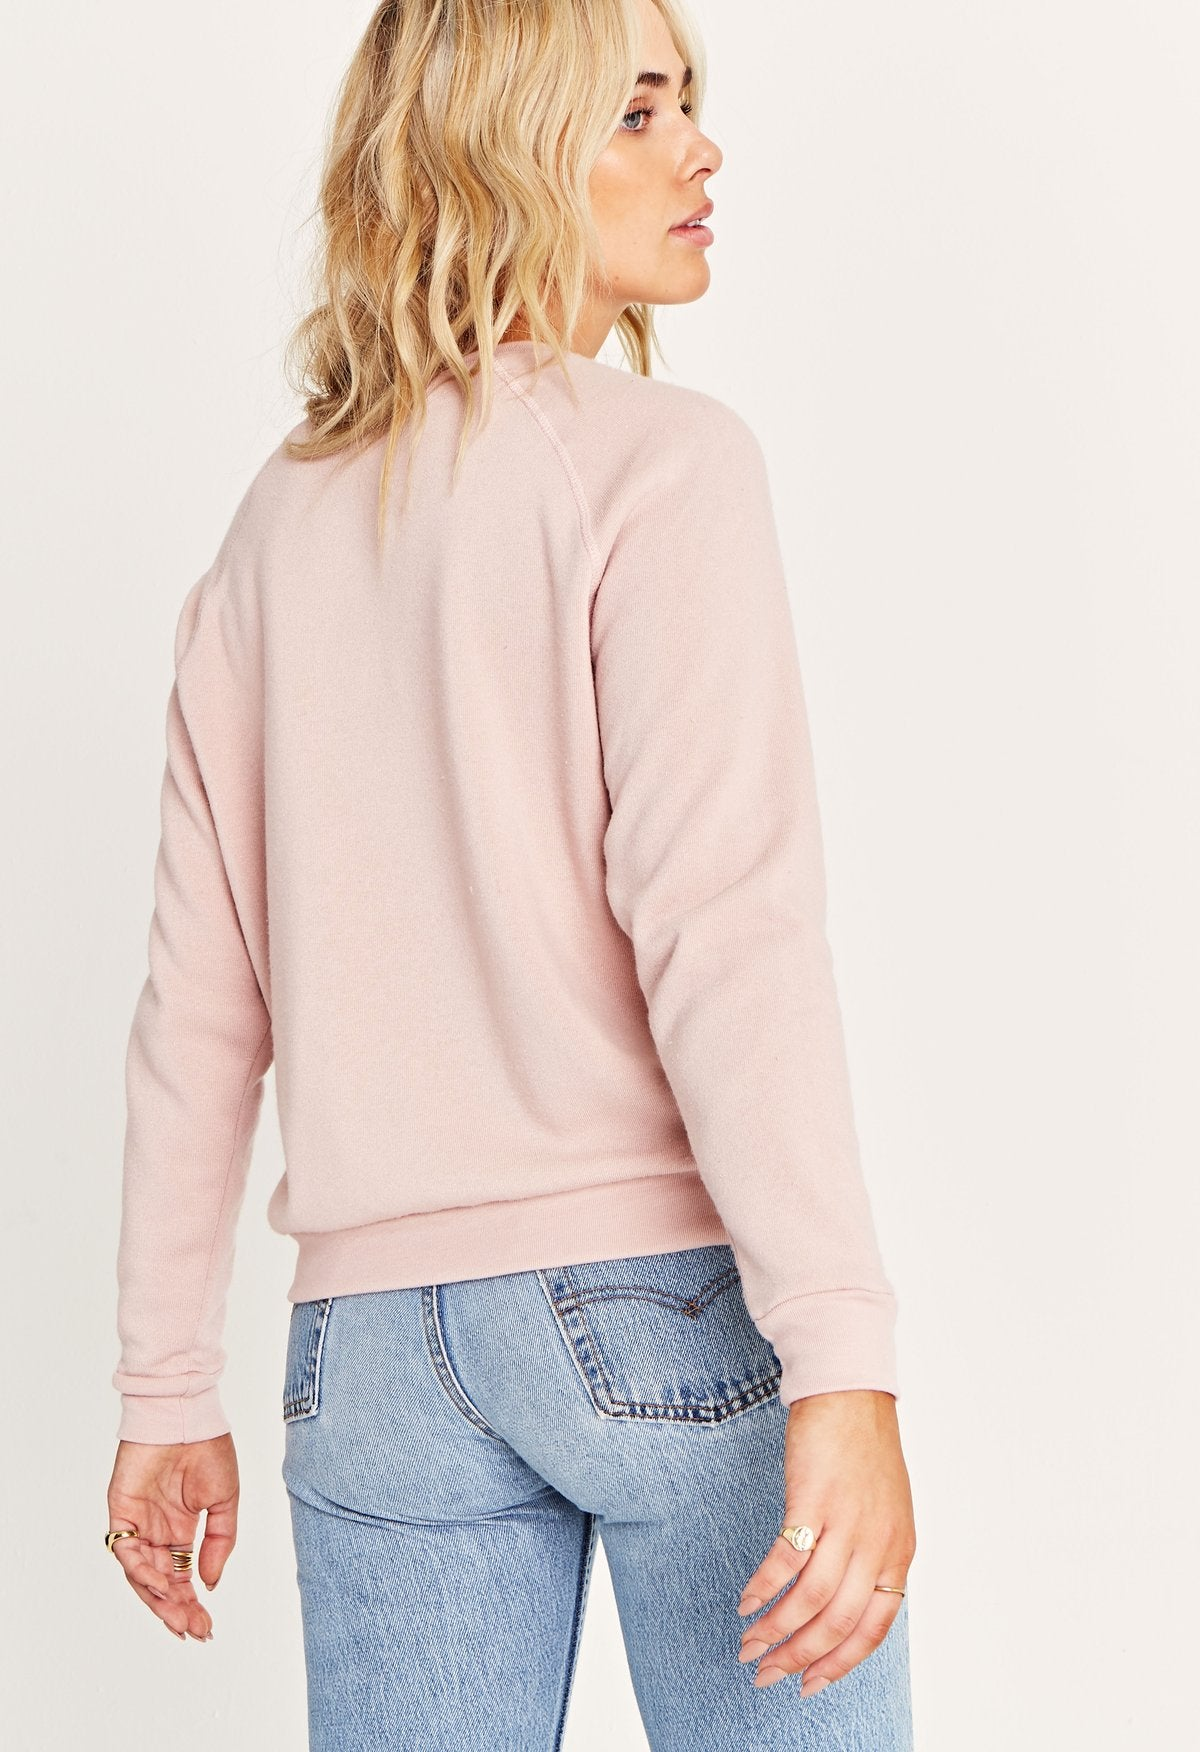 Project Social T Go With The Flow Sweatshirt